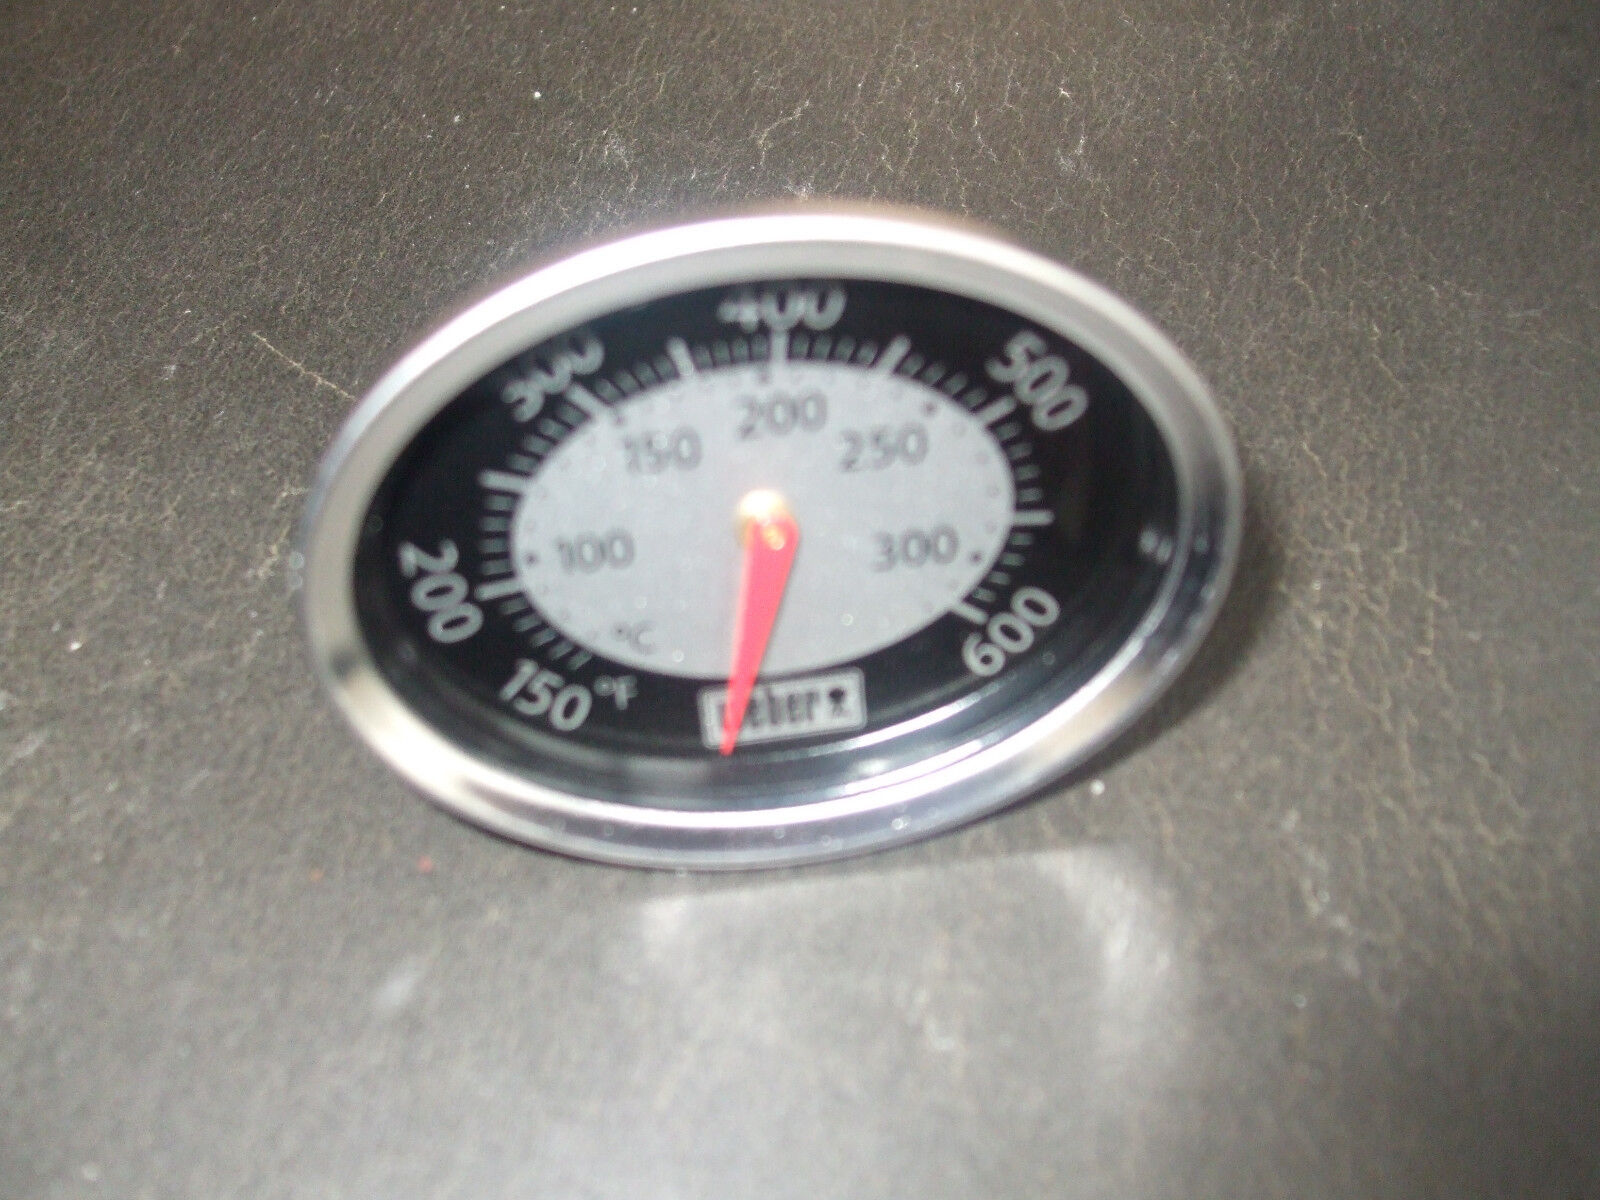 Genuine Weber Gas Grill Thermometer Replacement Q1000 Q2000